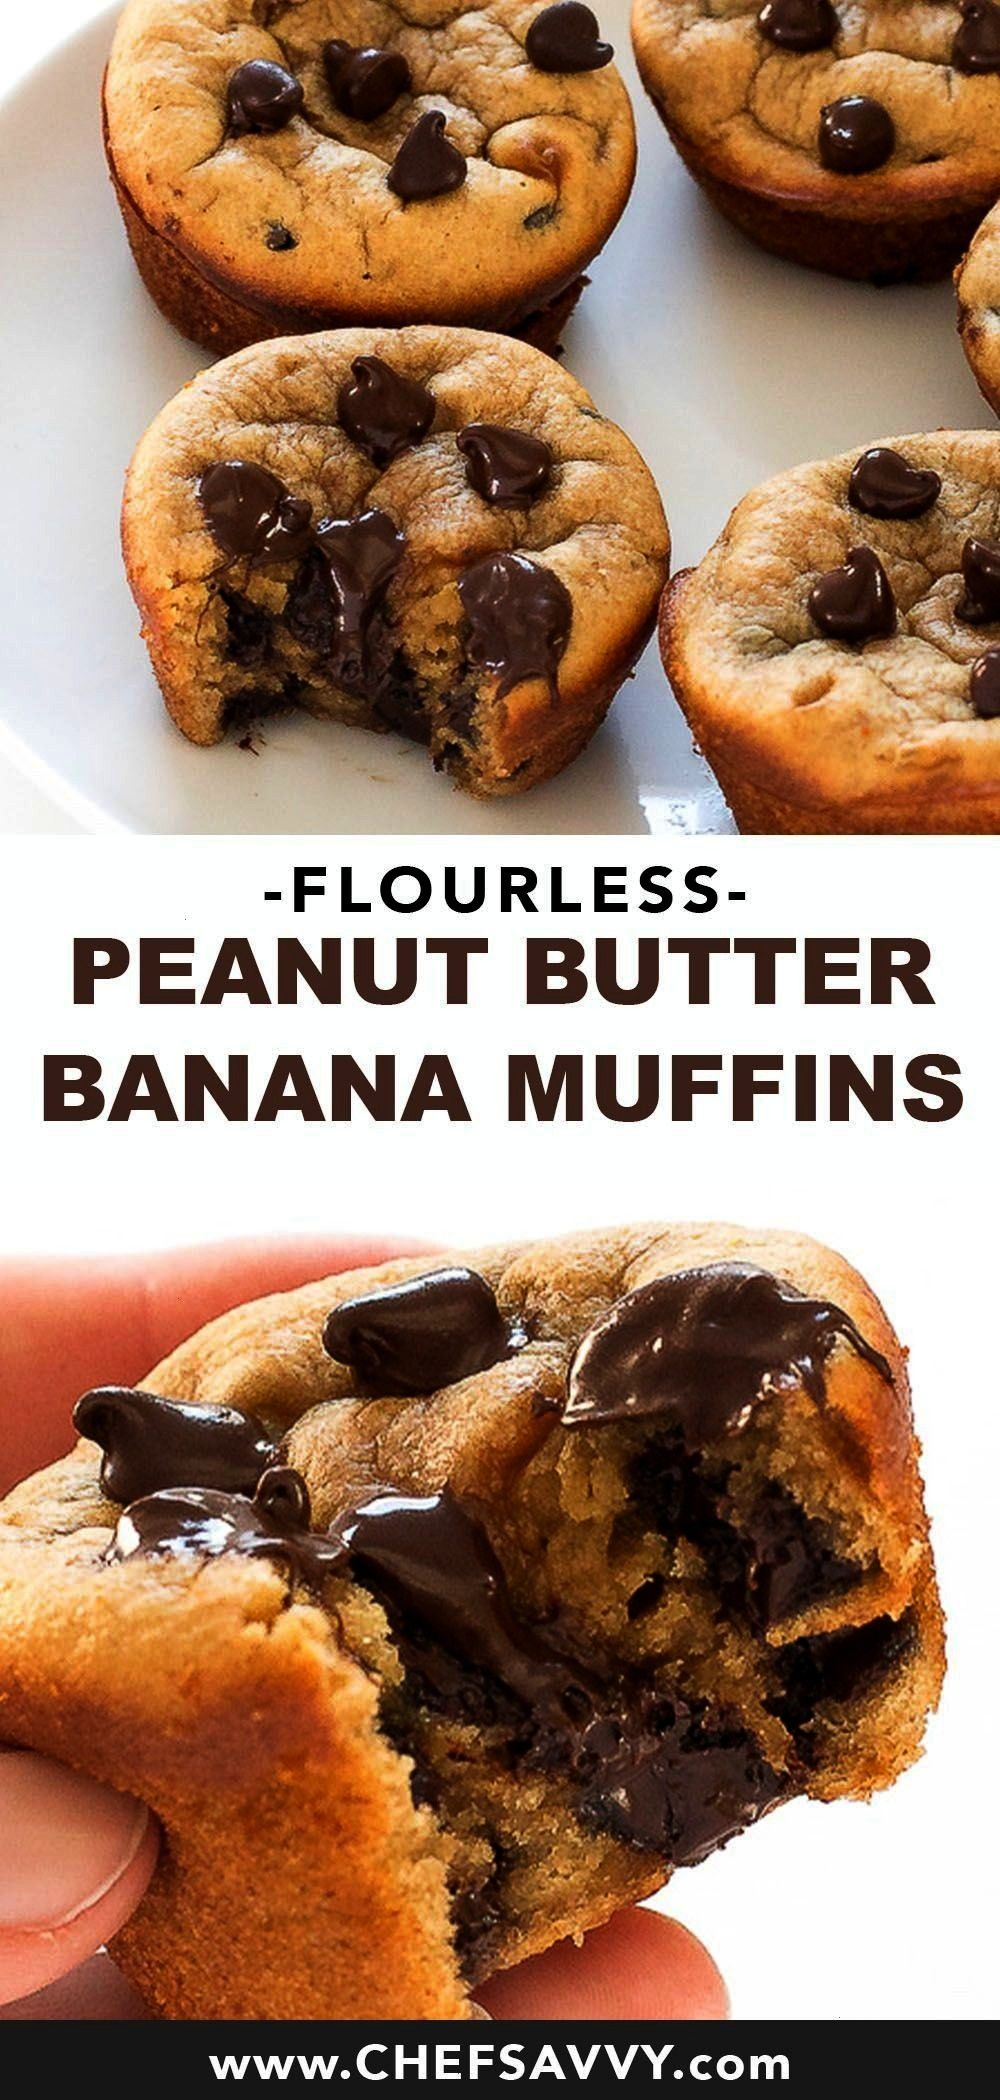 Peanut Butter Banana Muffins couldnt be easier Simply add all of the ingredients to a blender and pulse to combine thats it Best of all they are healthy gluten free and m...